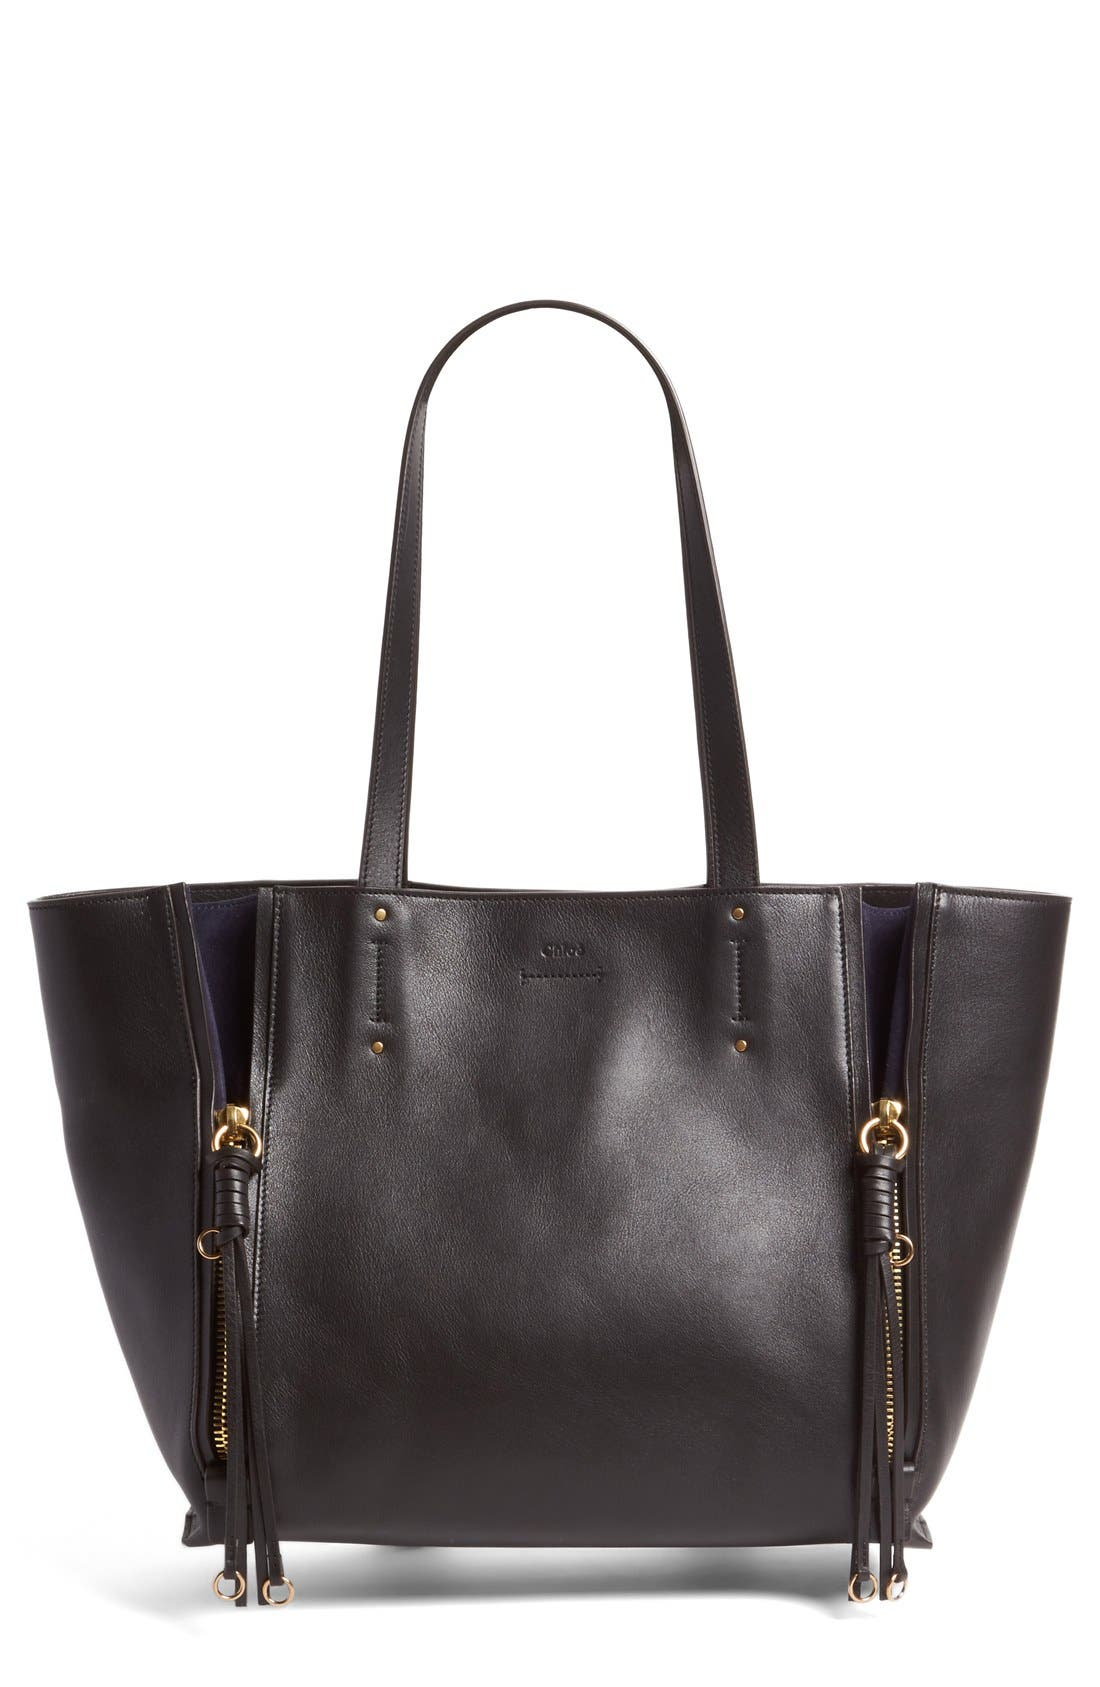 Medium Milo Calfskin Leather Tote,                         Main,                         color, BLACK